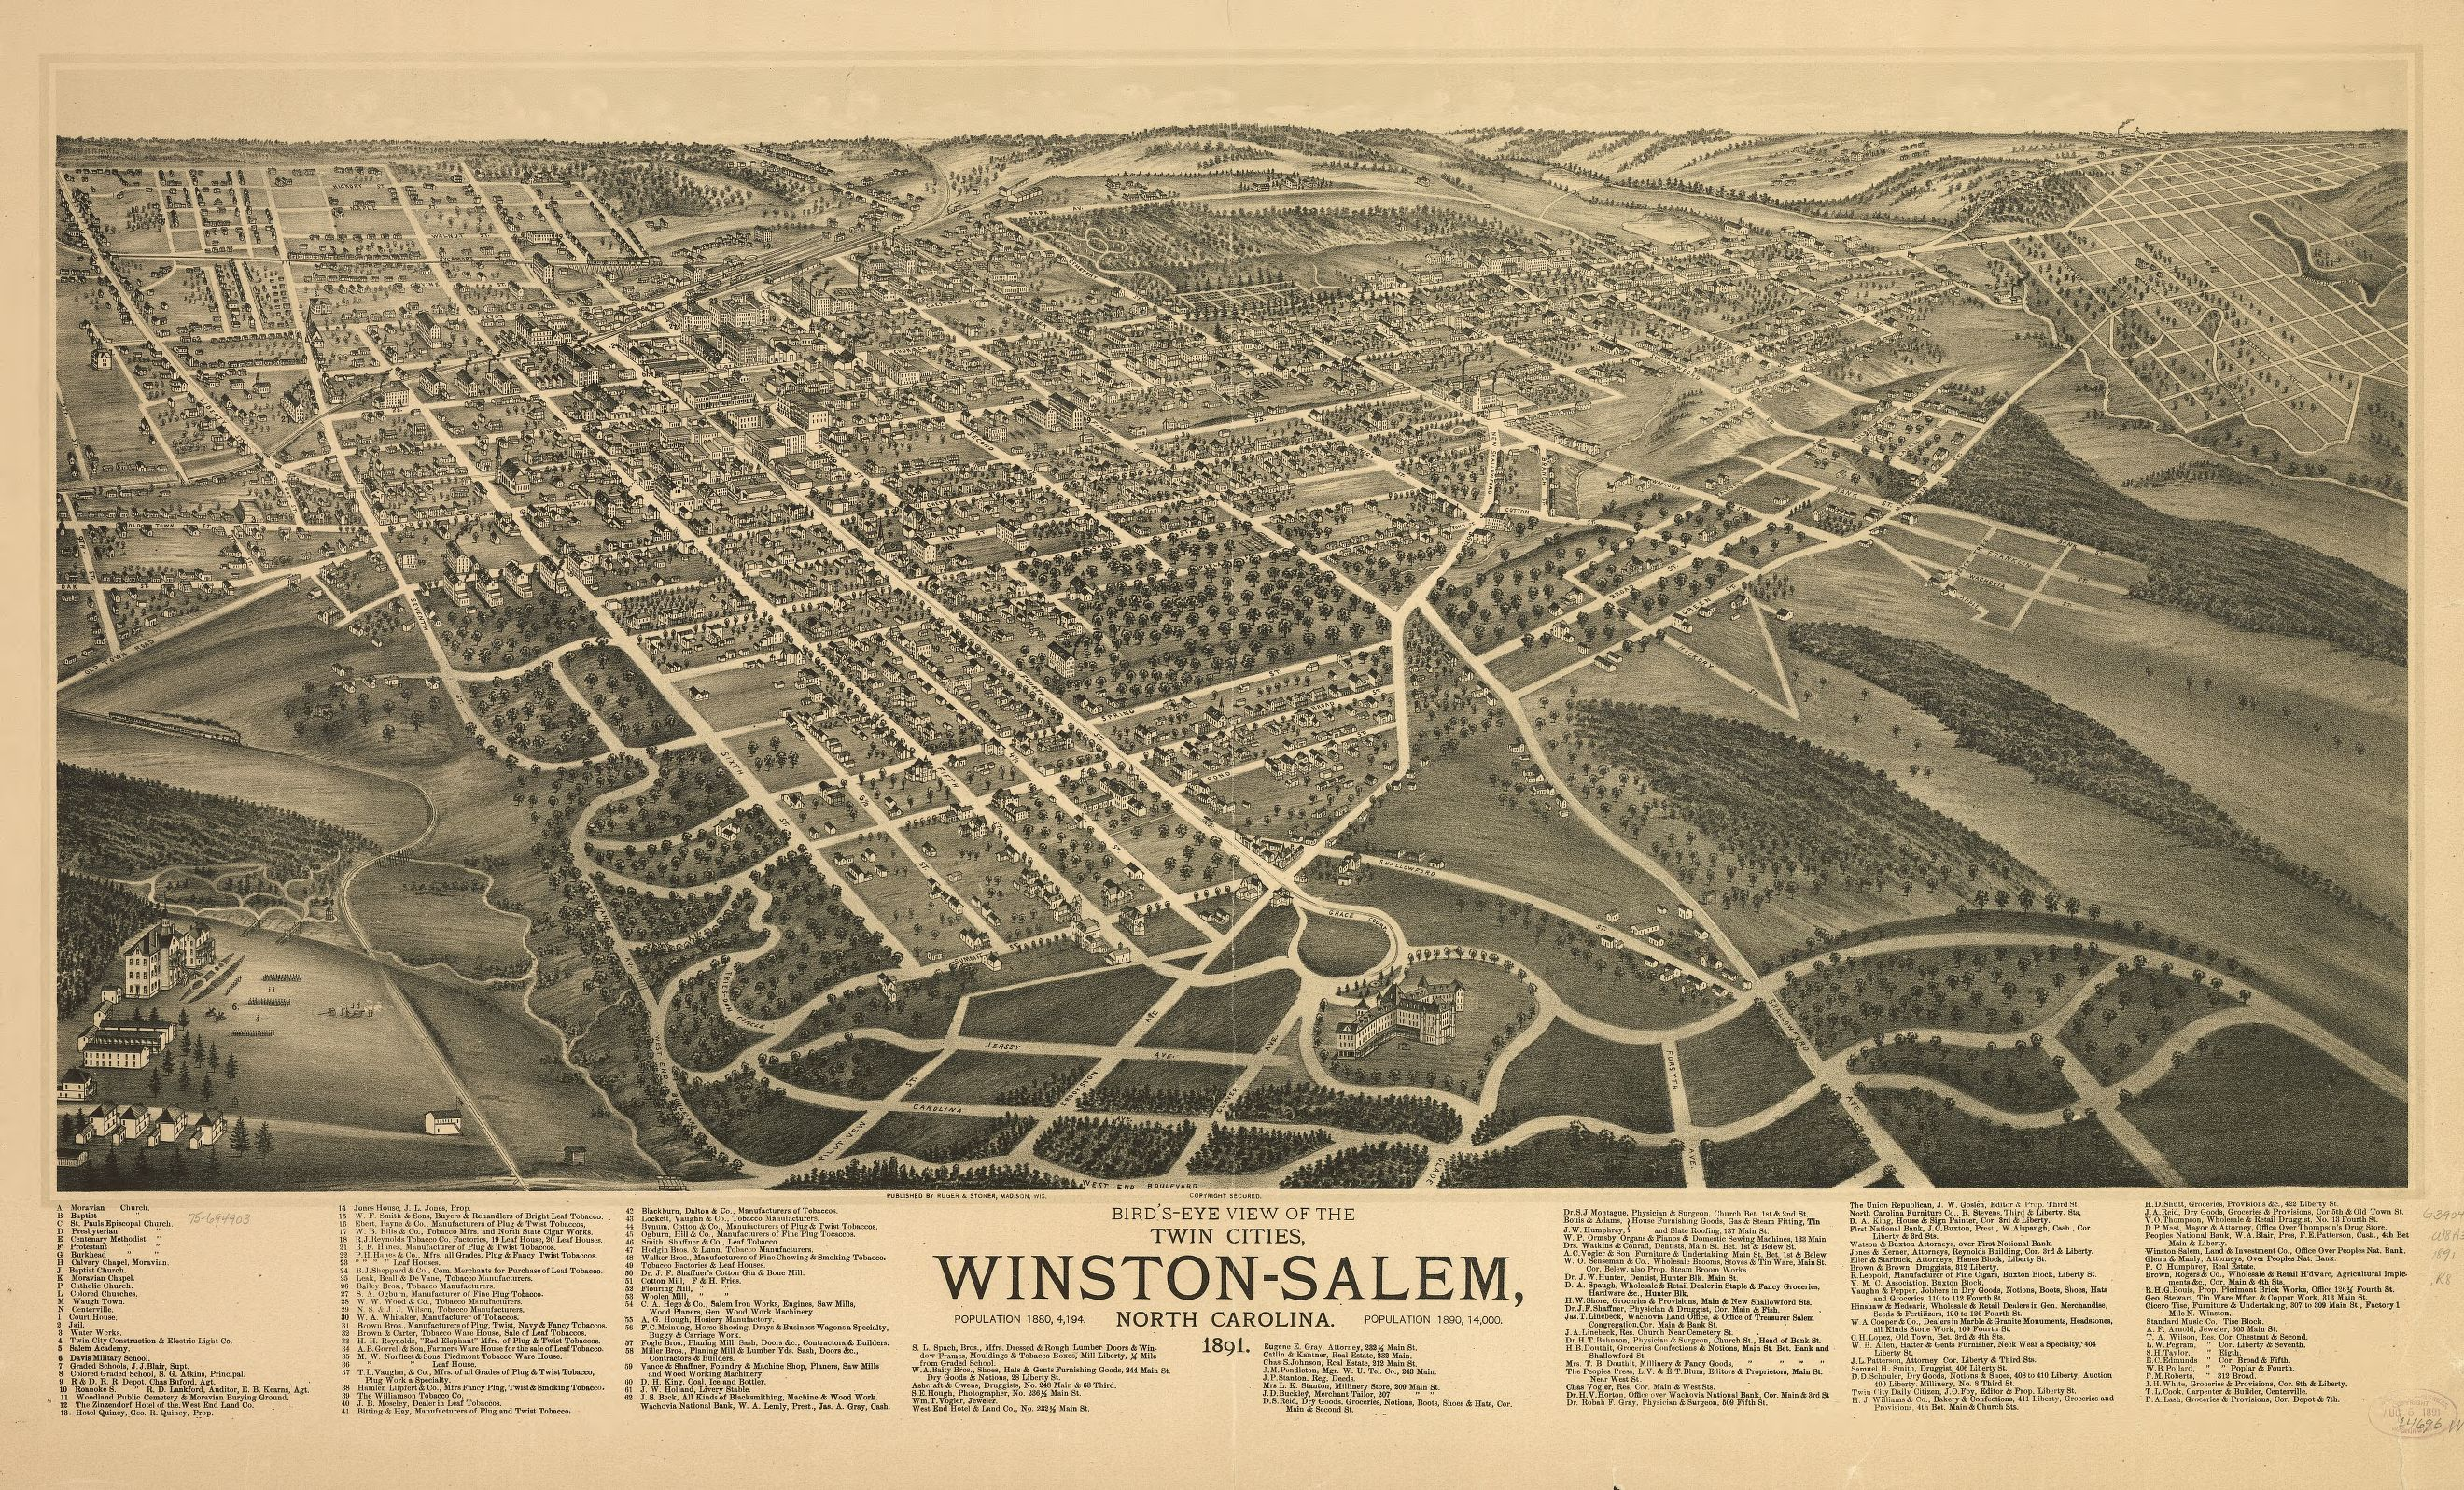 1891 Bird's eye view of the corner of Main and First Streets in Winston-Salem. Starbuck's two-story home can be seen prominiently.